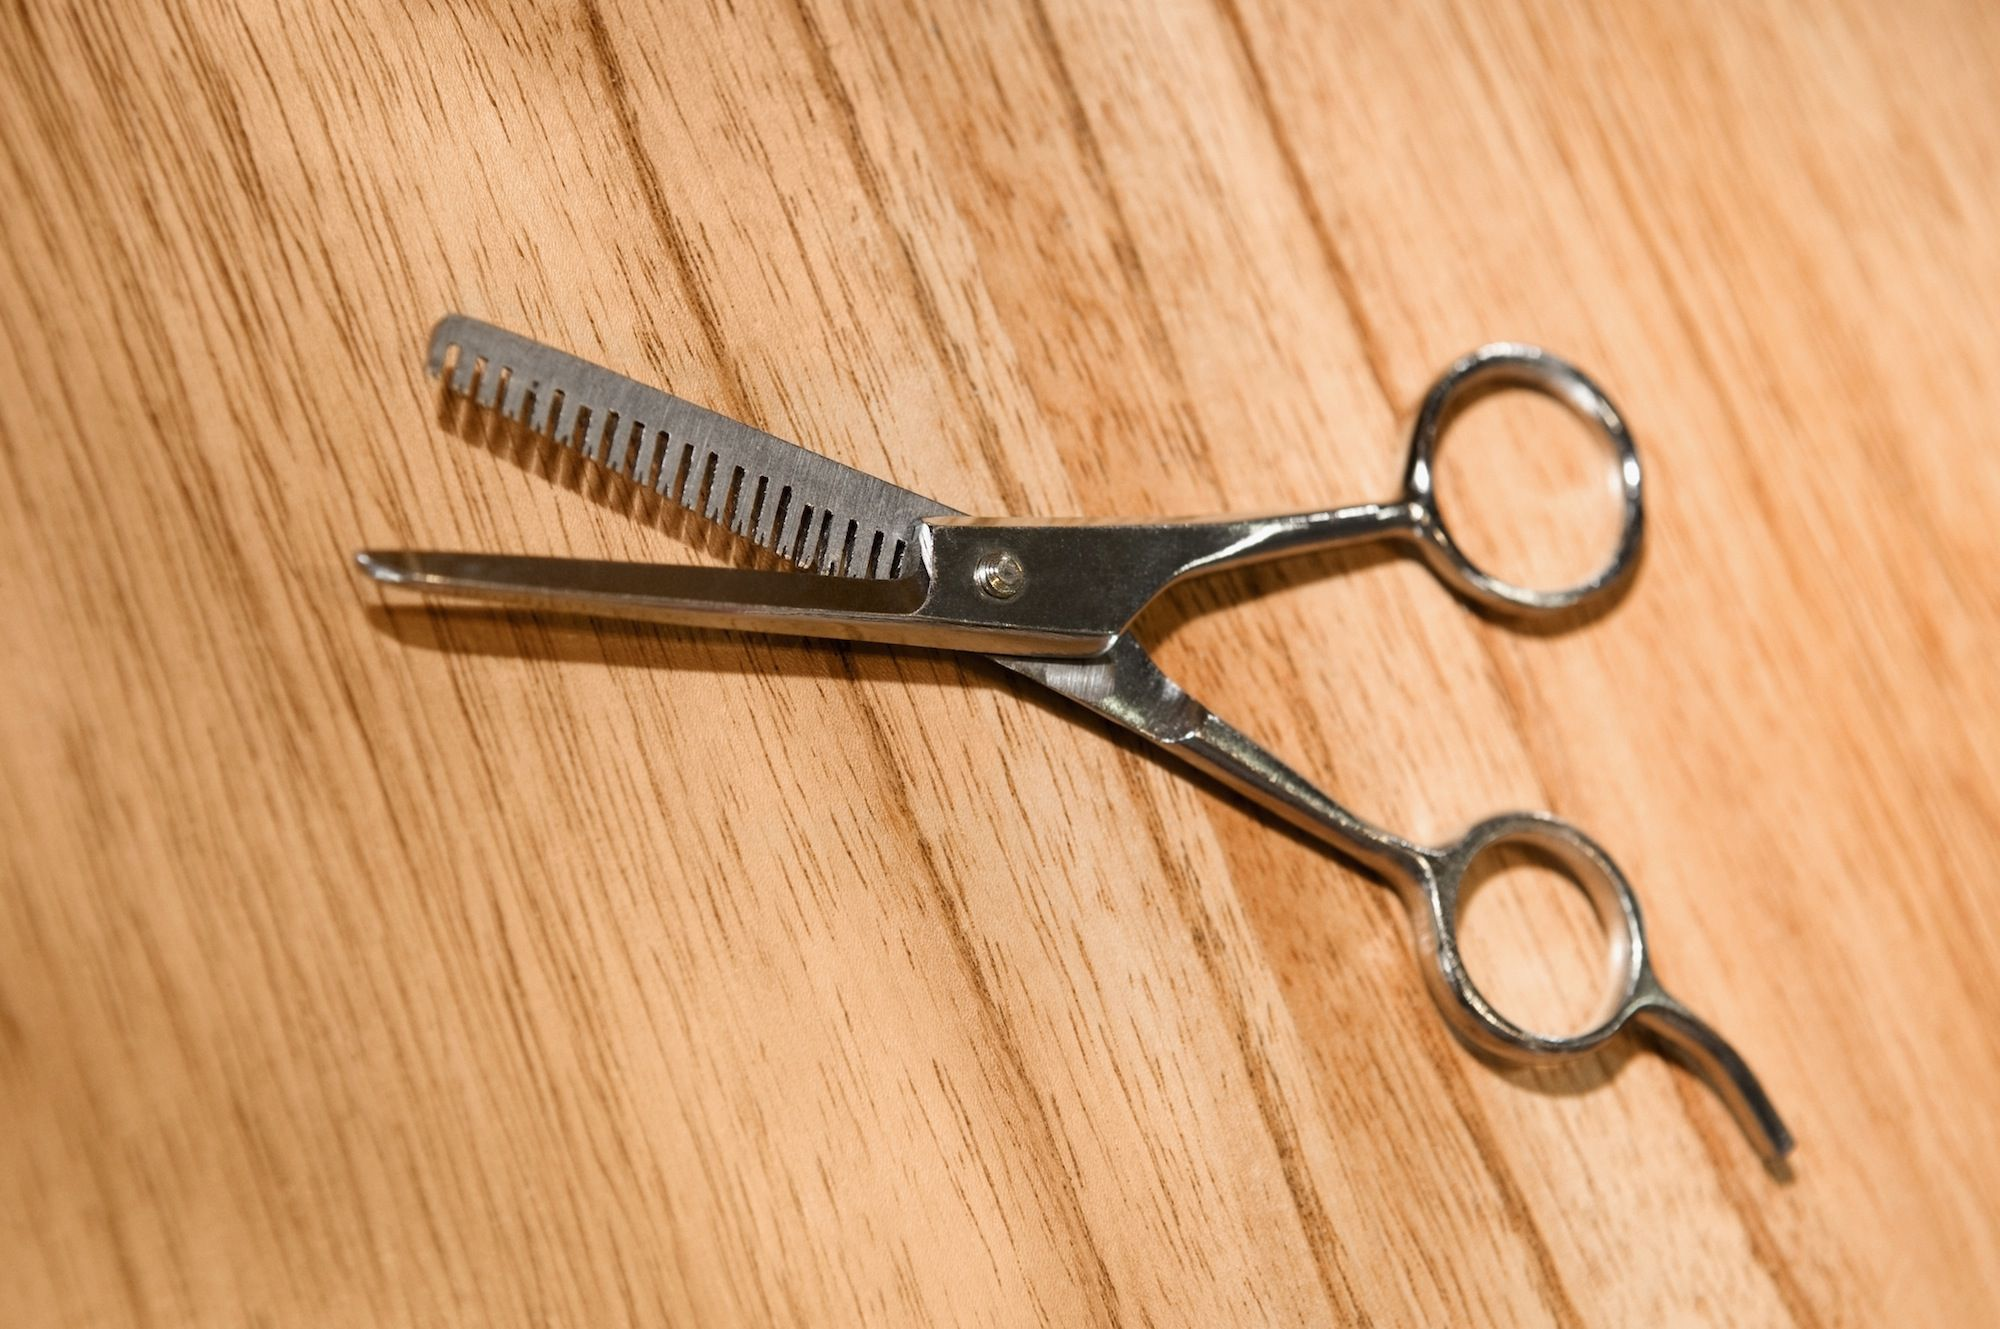 Thinning Shears Helpful Tips For A Better Haircut